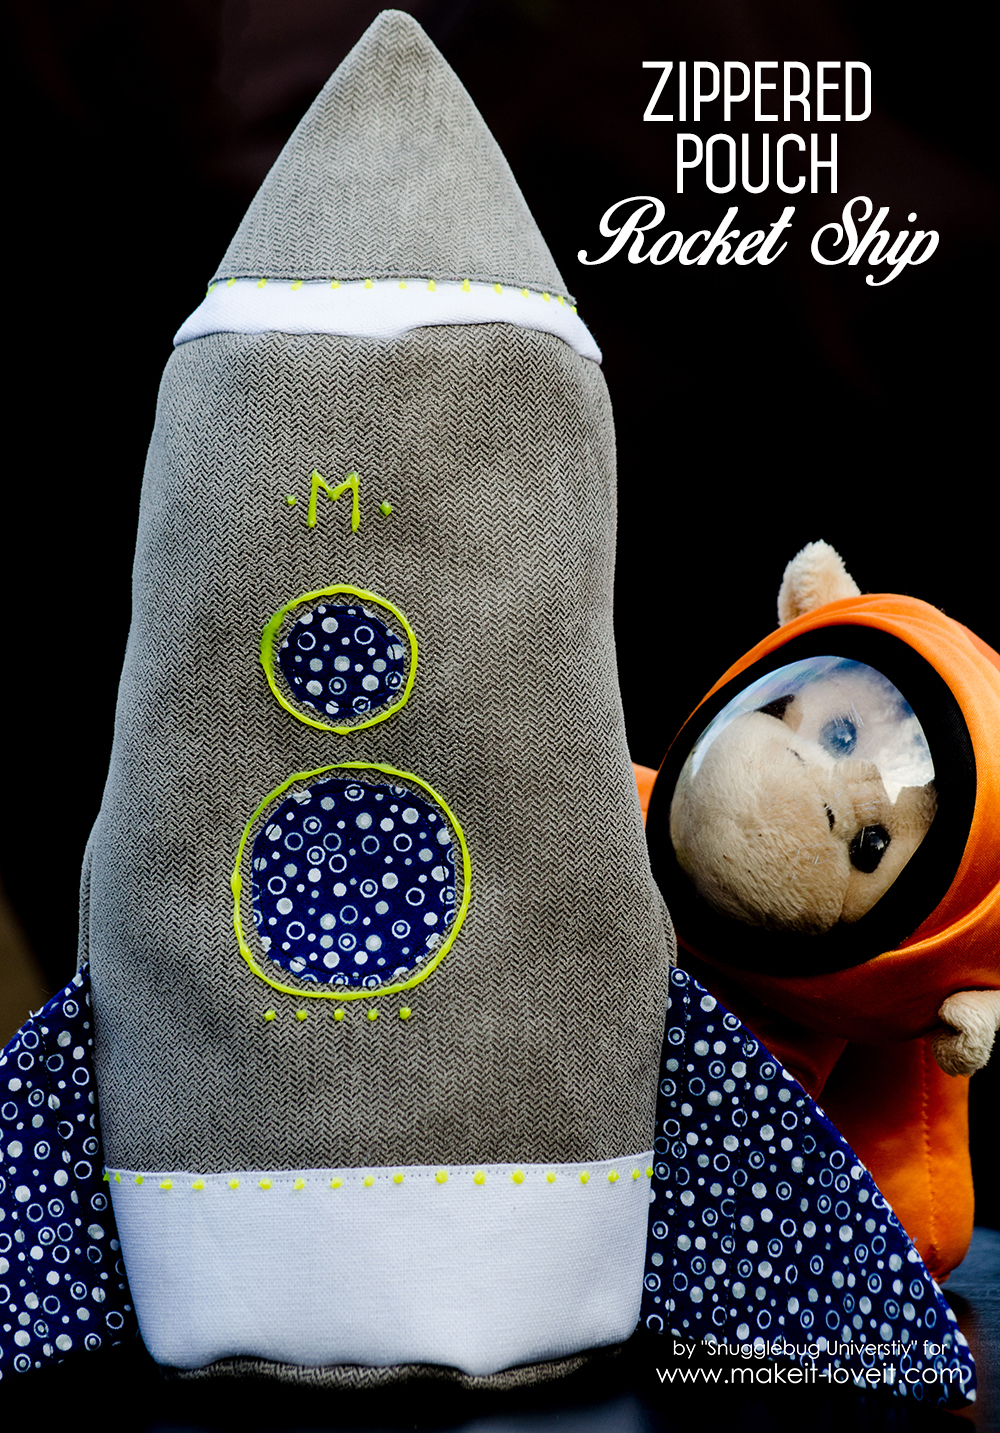 DIY Zippered Pouch Rocket Ship